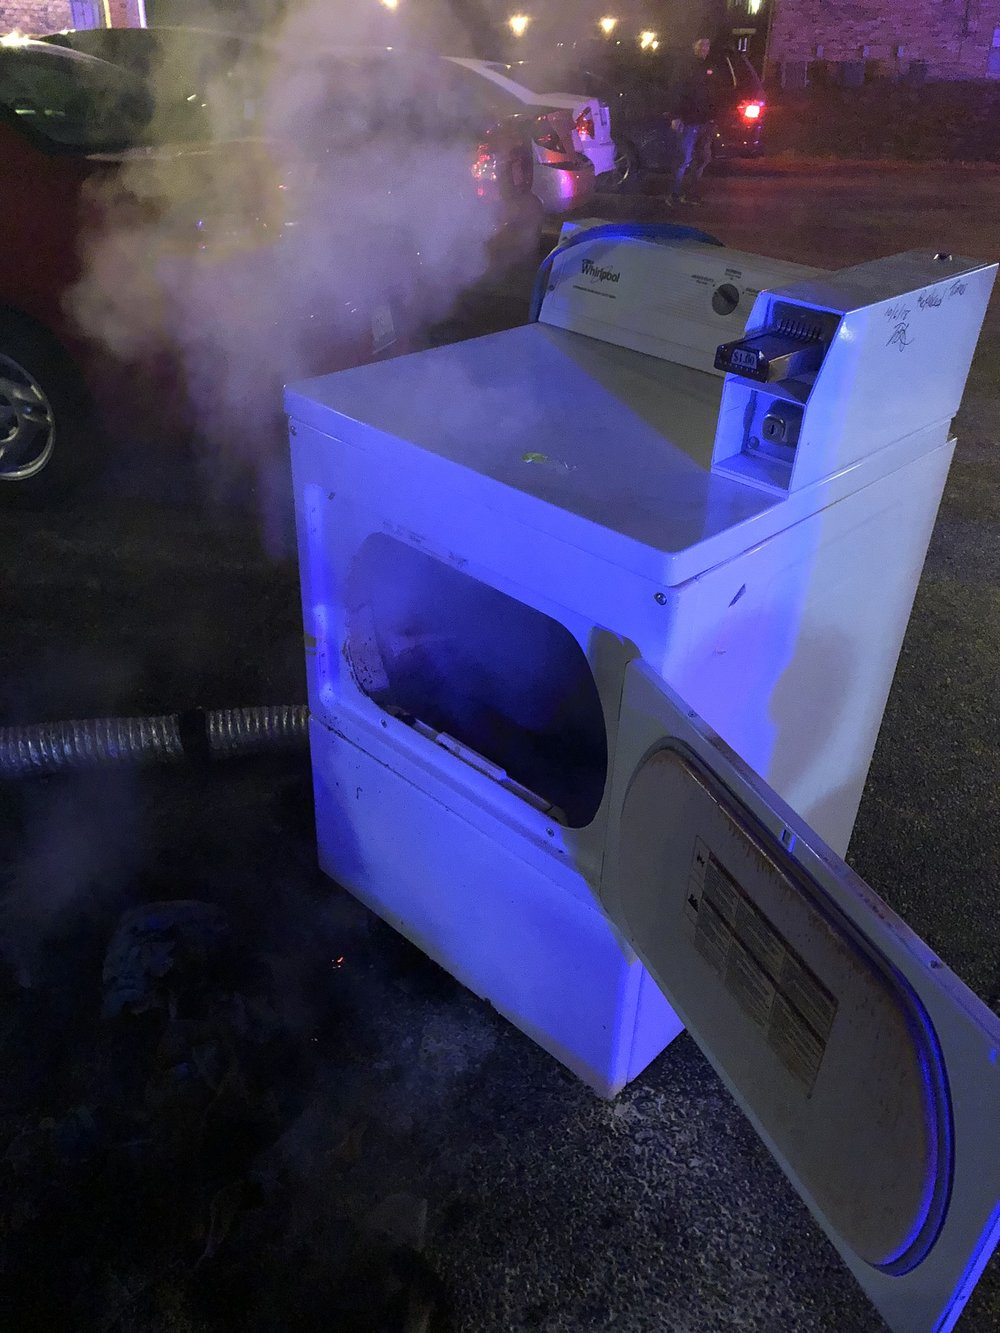 On 03/27/19, East Side Firefighters responded for the smell of smoke and detectors sounding in an apartment building. Firefighters located a dryer on fire in the laundry room. The dryer was removed and fire extinguished. The vent pipe for the dryer was completely blocked.